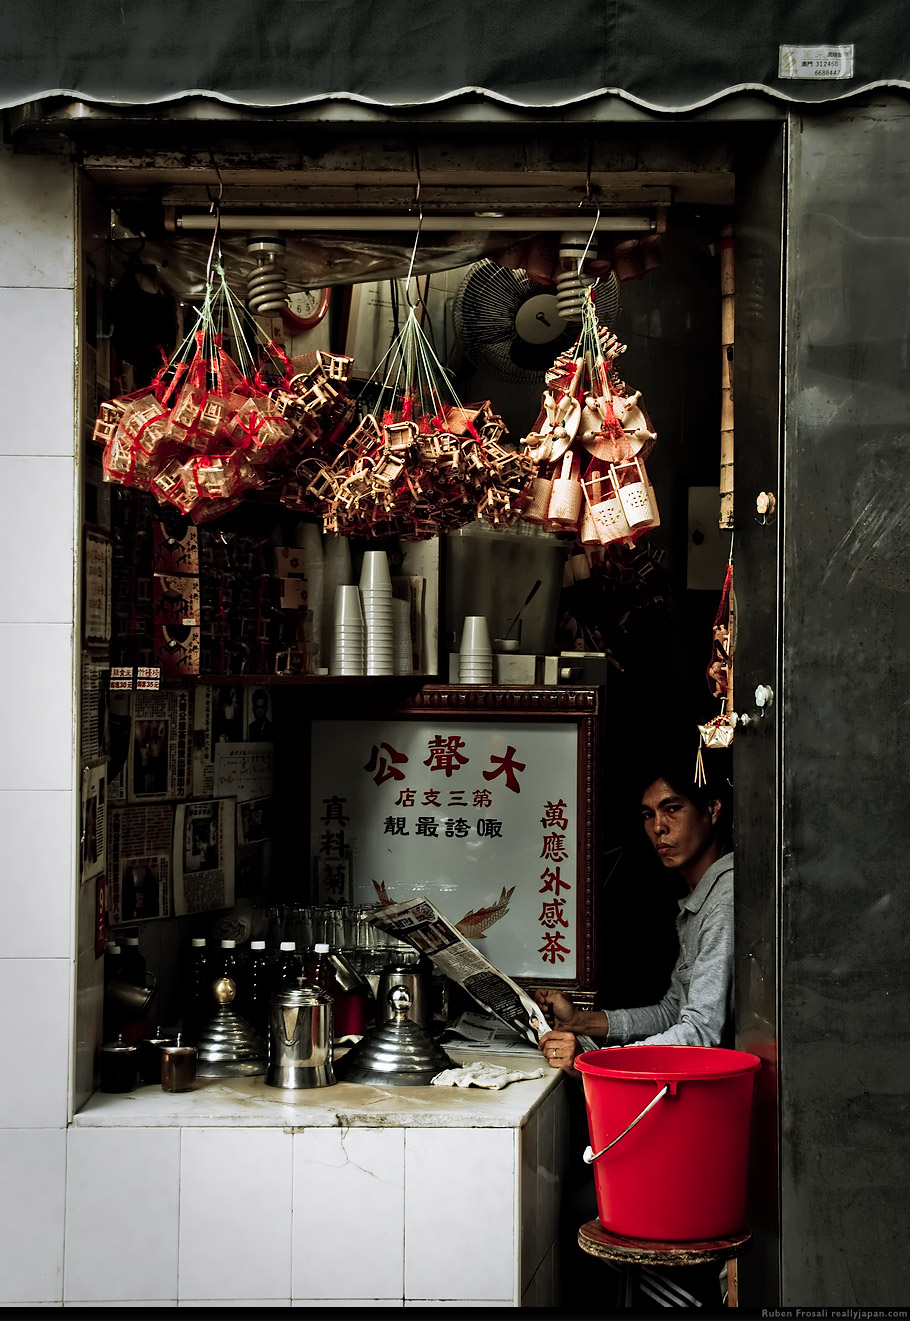 Small shop in Macau